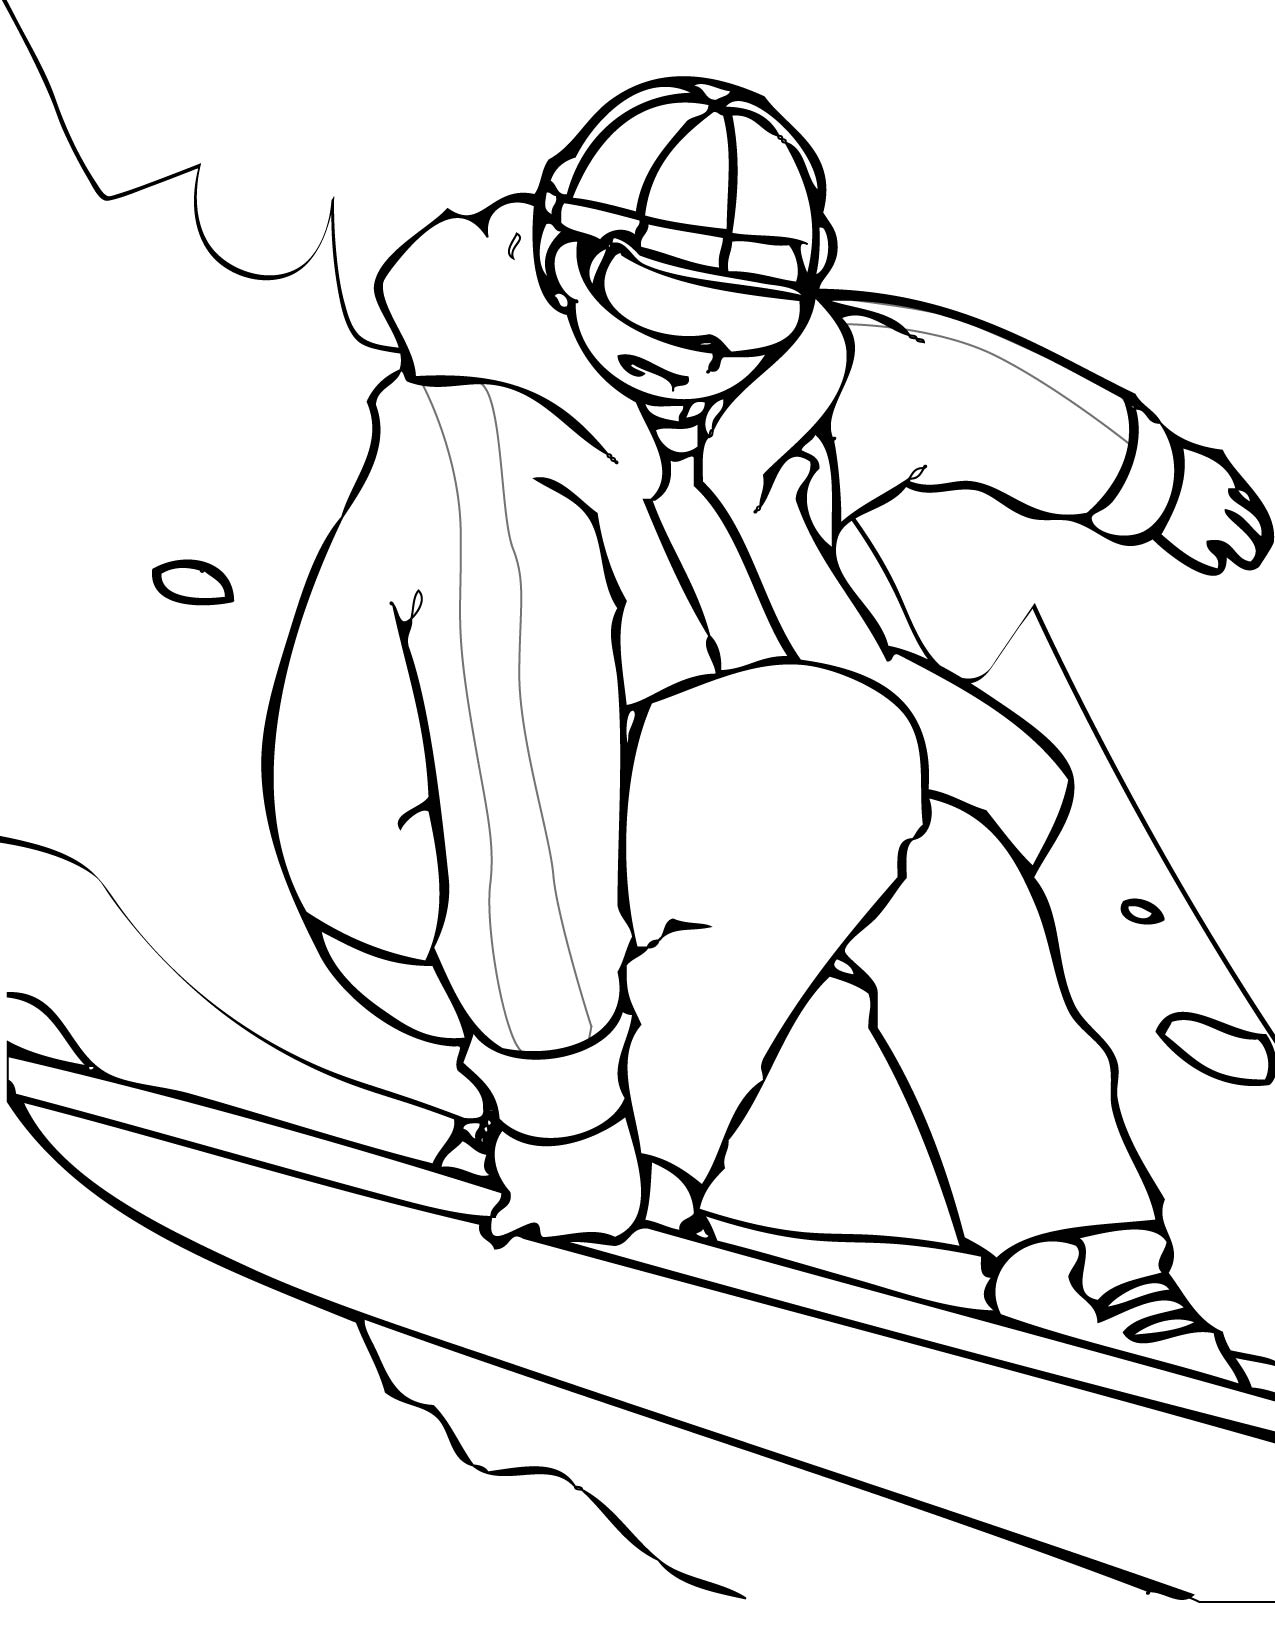 1275x1650 Extreme Sports Coloring Page To Print